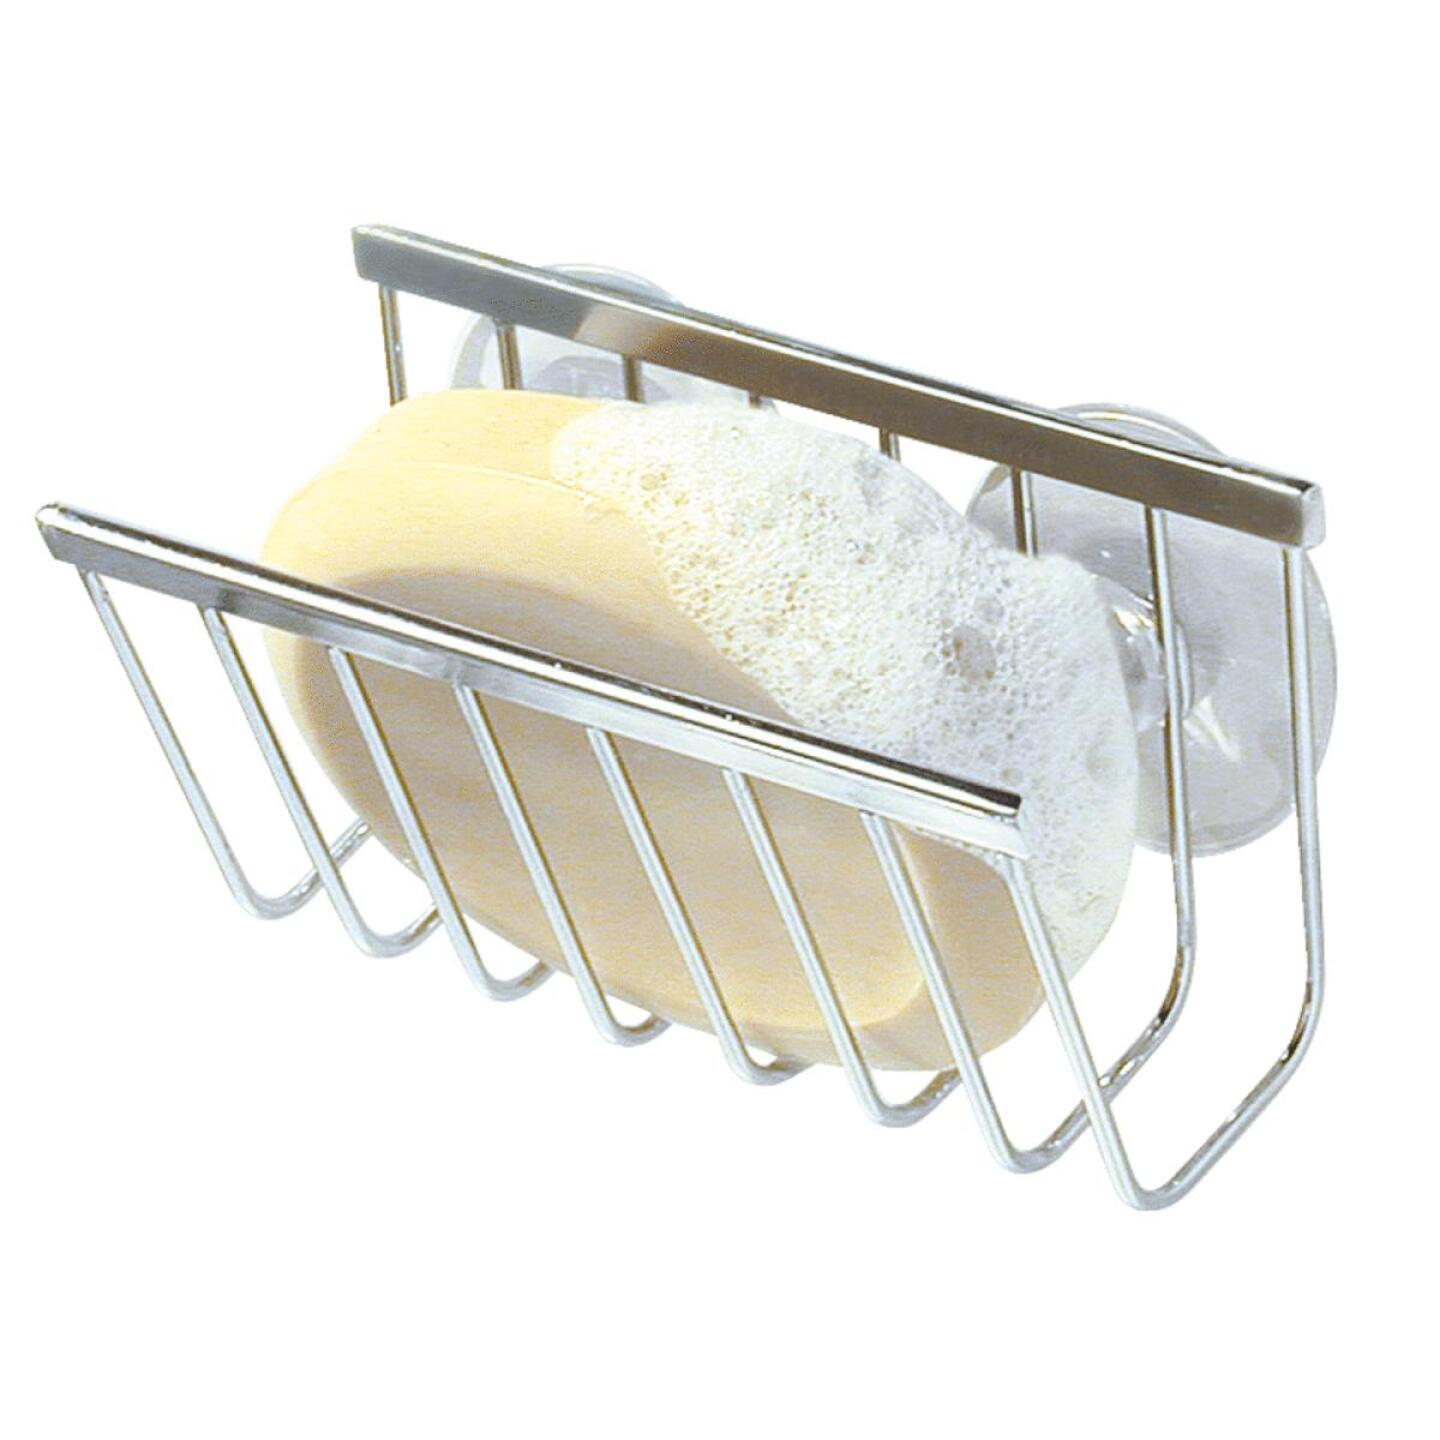 InterDesign Sinkworks Suction Soap & Sponge Holder Image 1